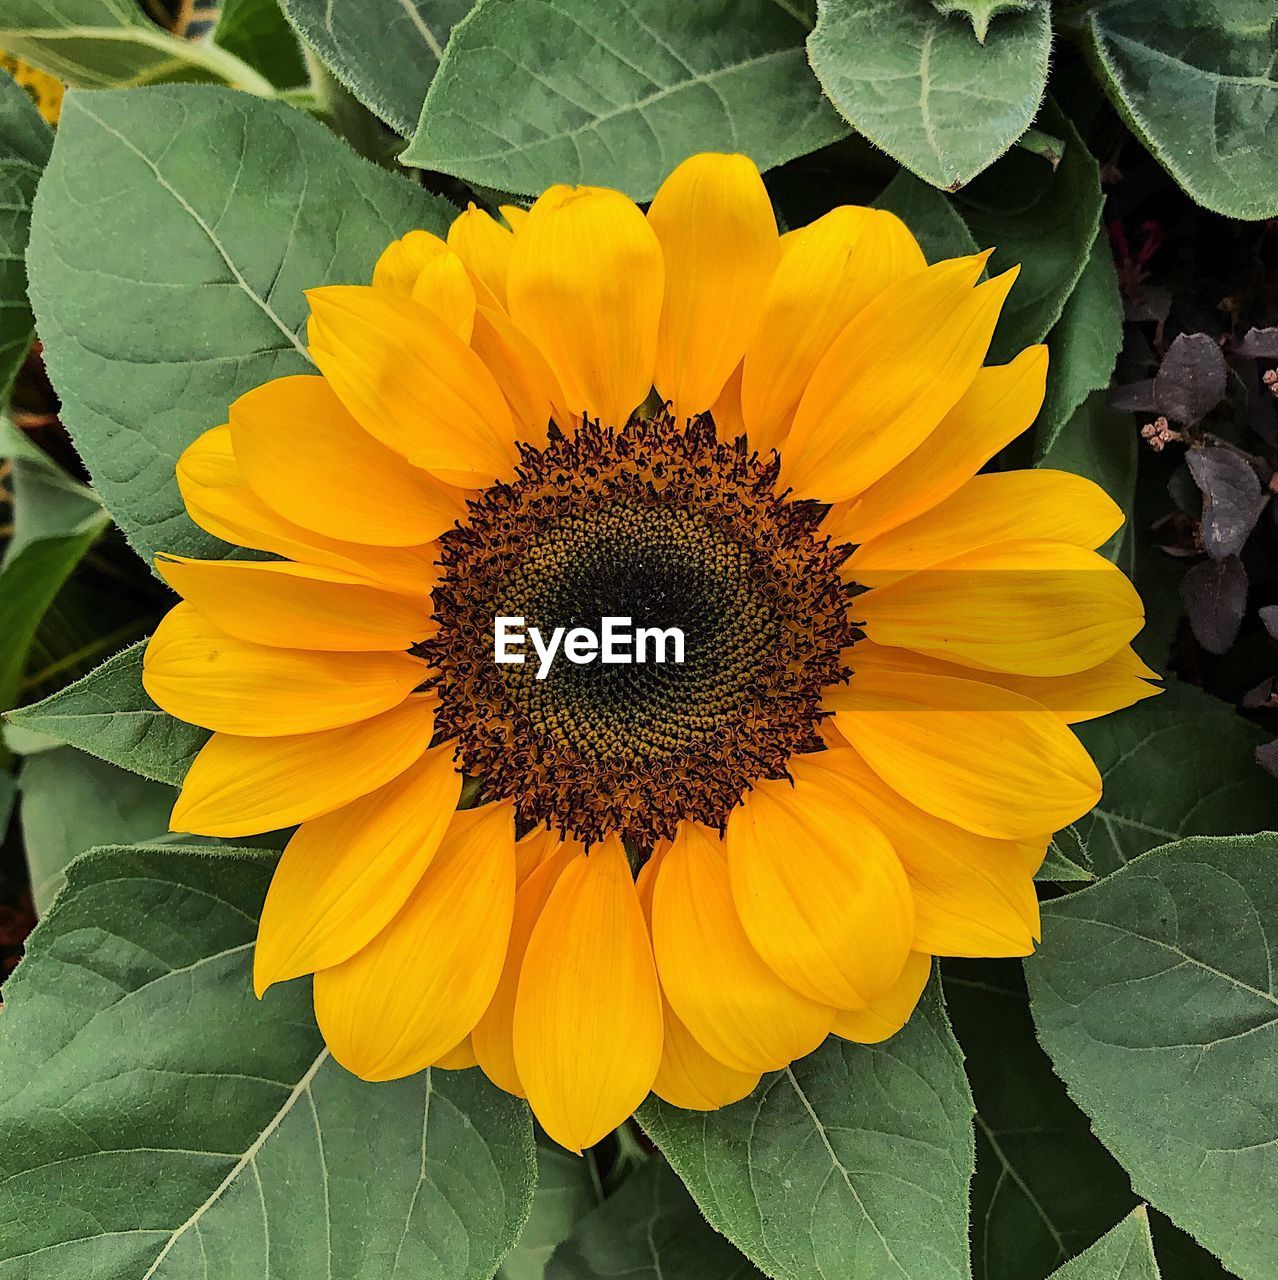 flower, yellow, petal, fragility, leaf, flower head, beauty in nature, nature, plant, growth, freshness, sunflower, outdoors, pollen, day, no people, close-up, green color, blooming